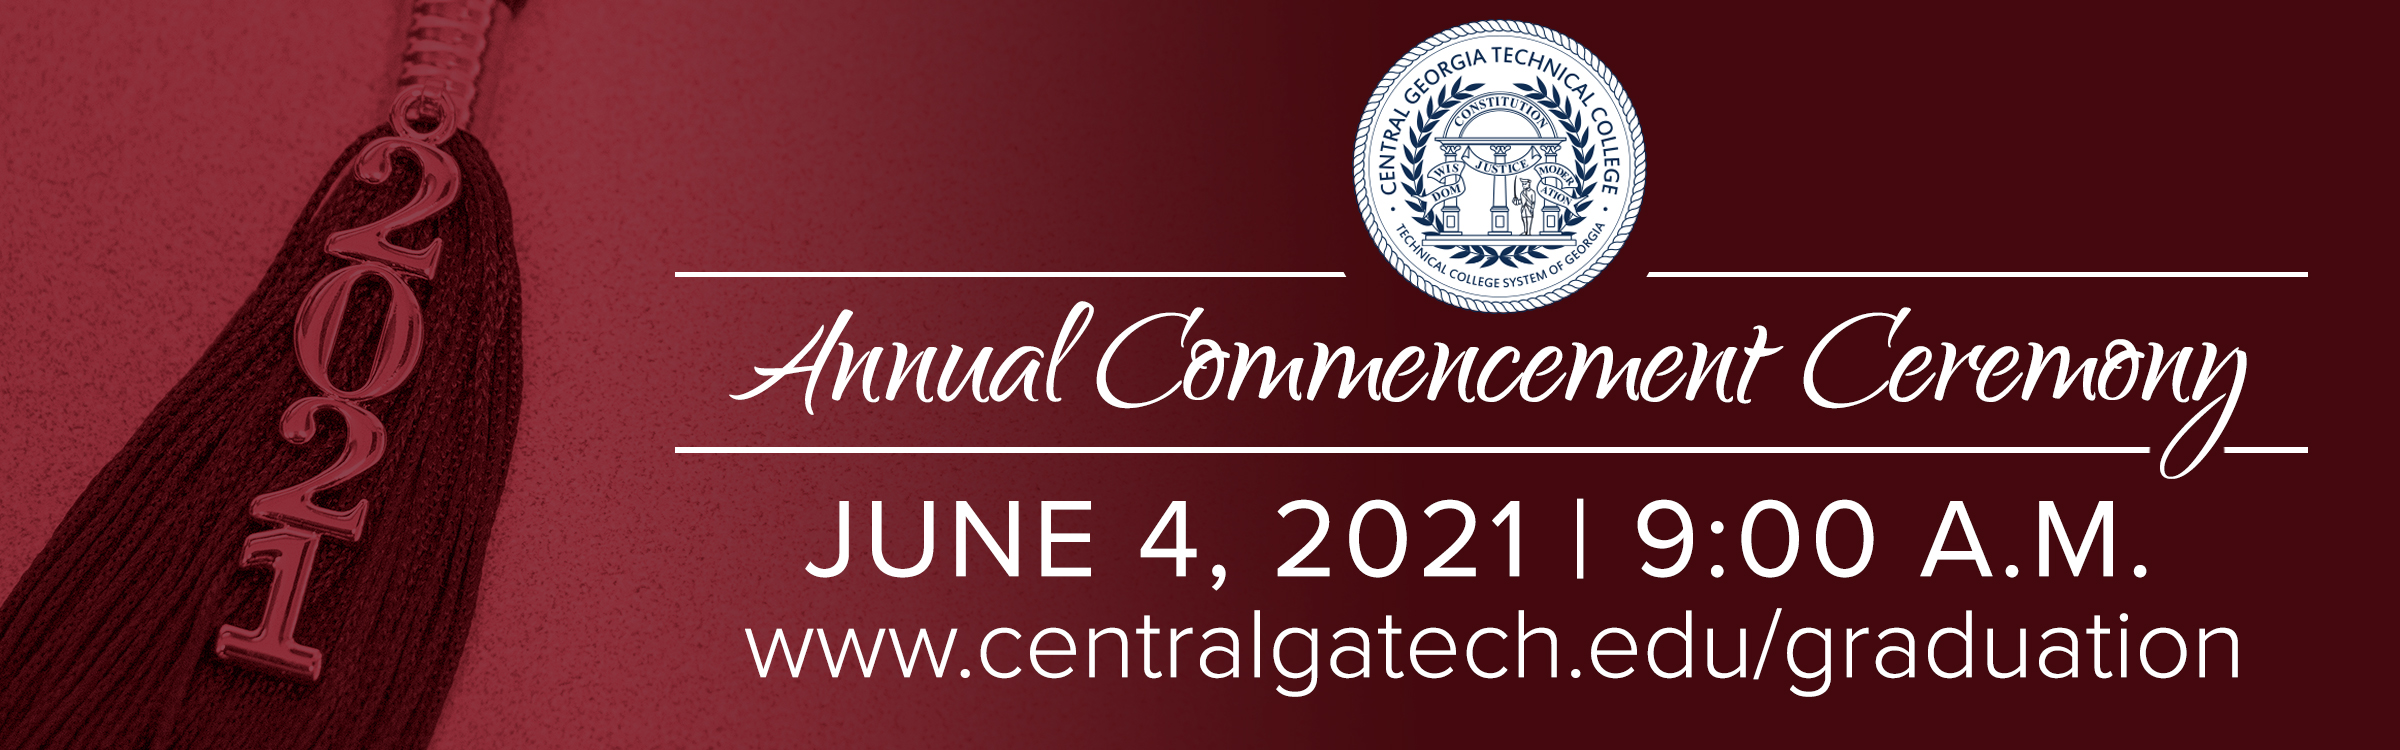 CGTC Announces In-Person Commencement Ceremony for June 4